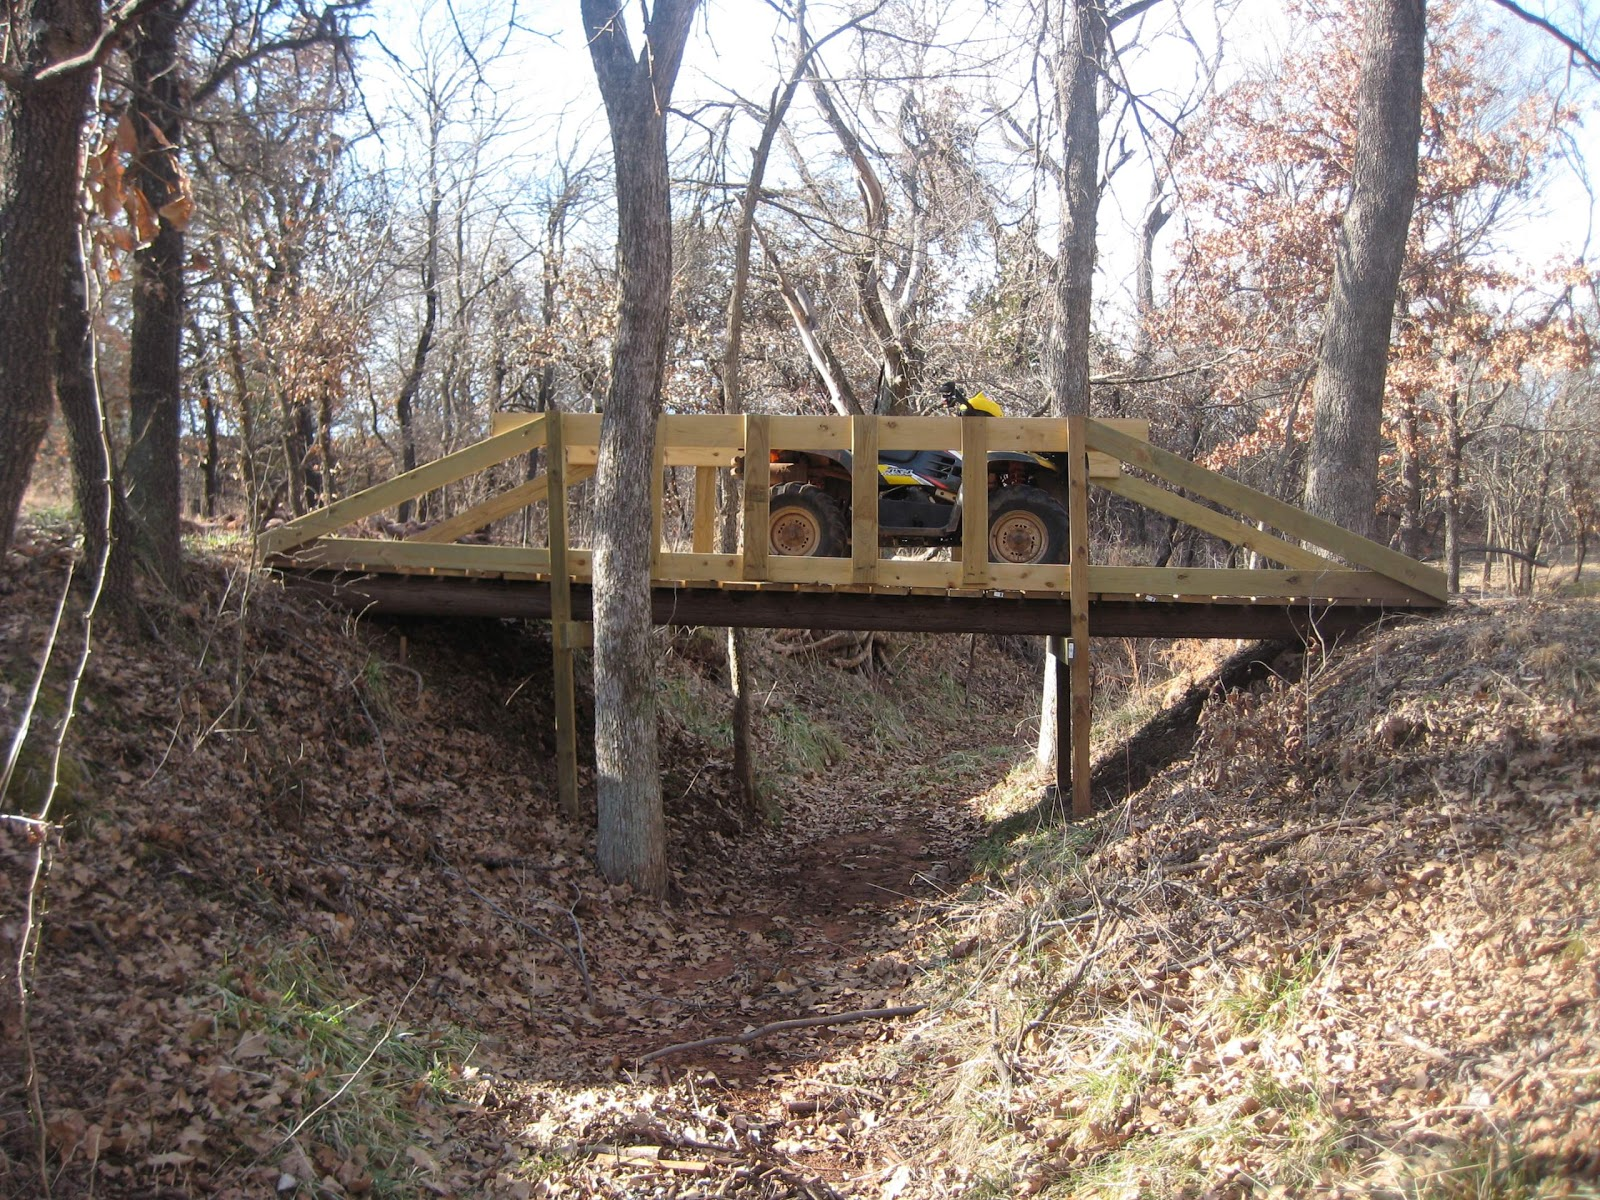 Small Creek Bridge Design - Bing images